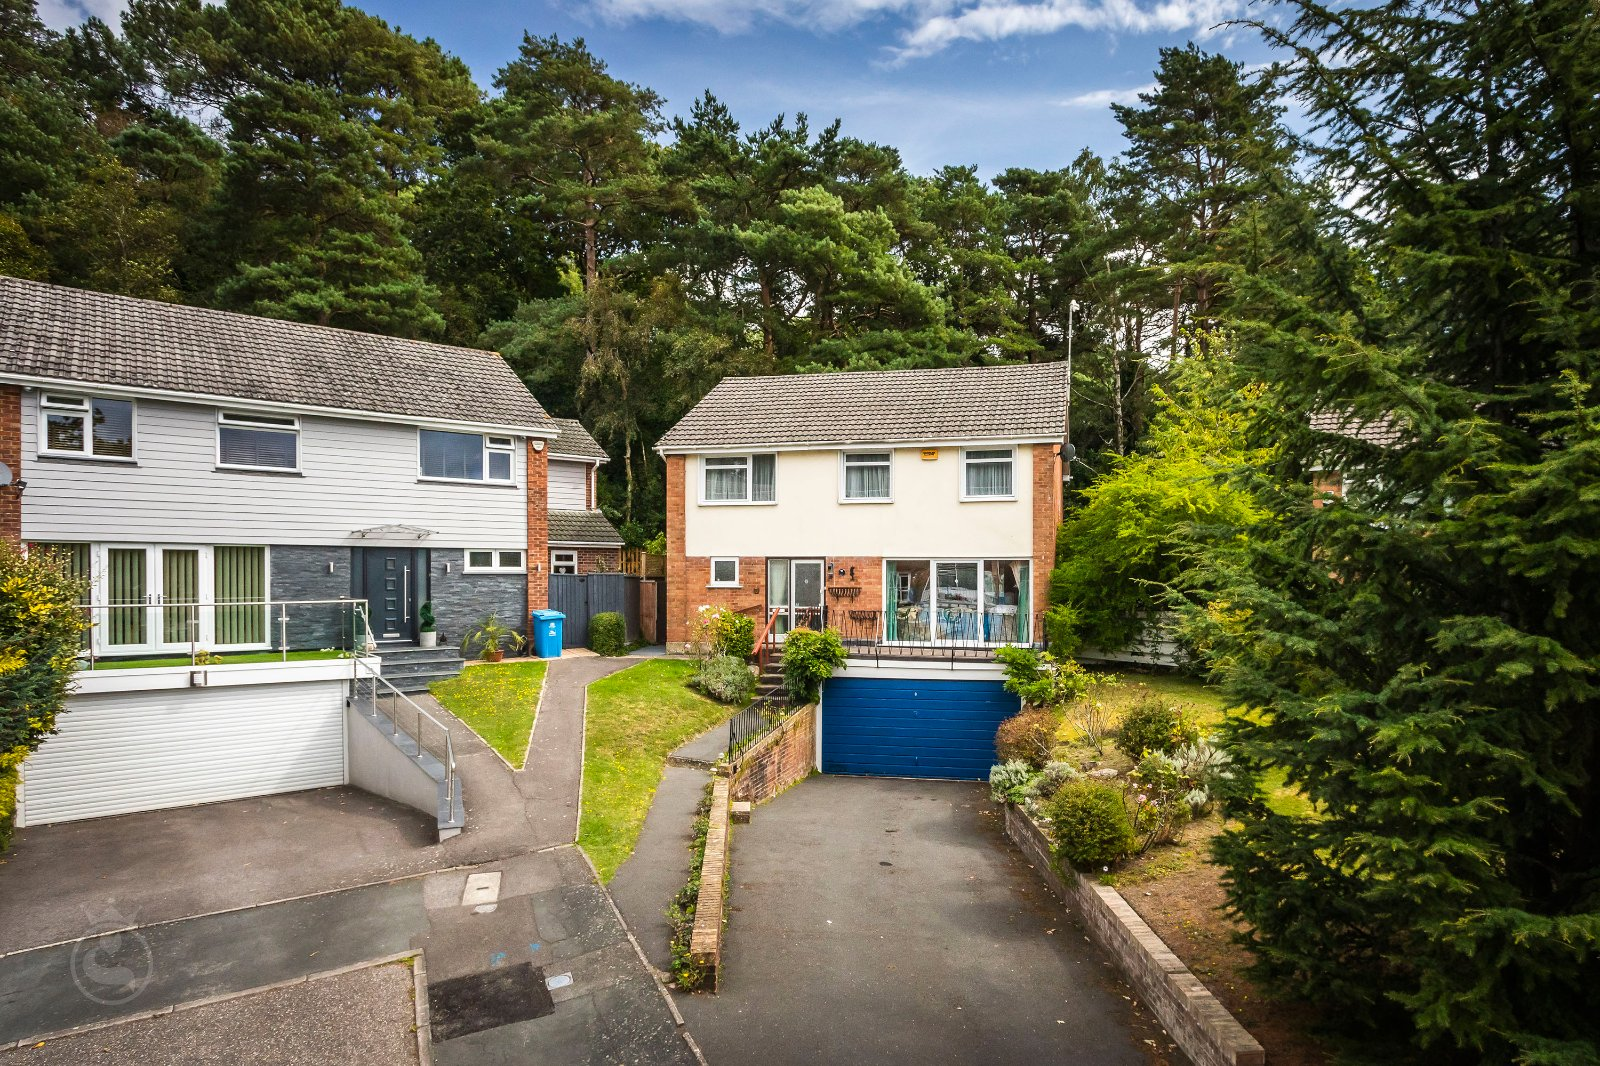 4 bed house for sale in Lower Parkstone - Property Image 1